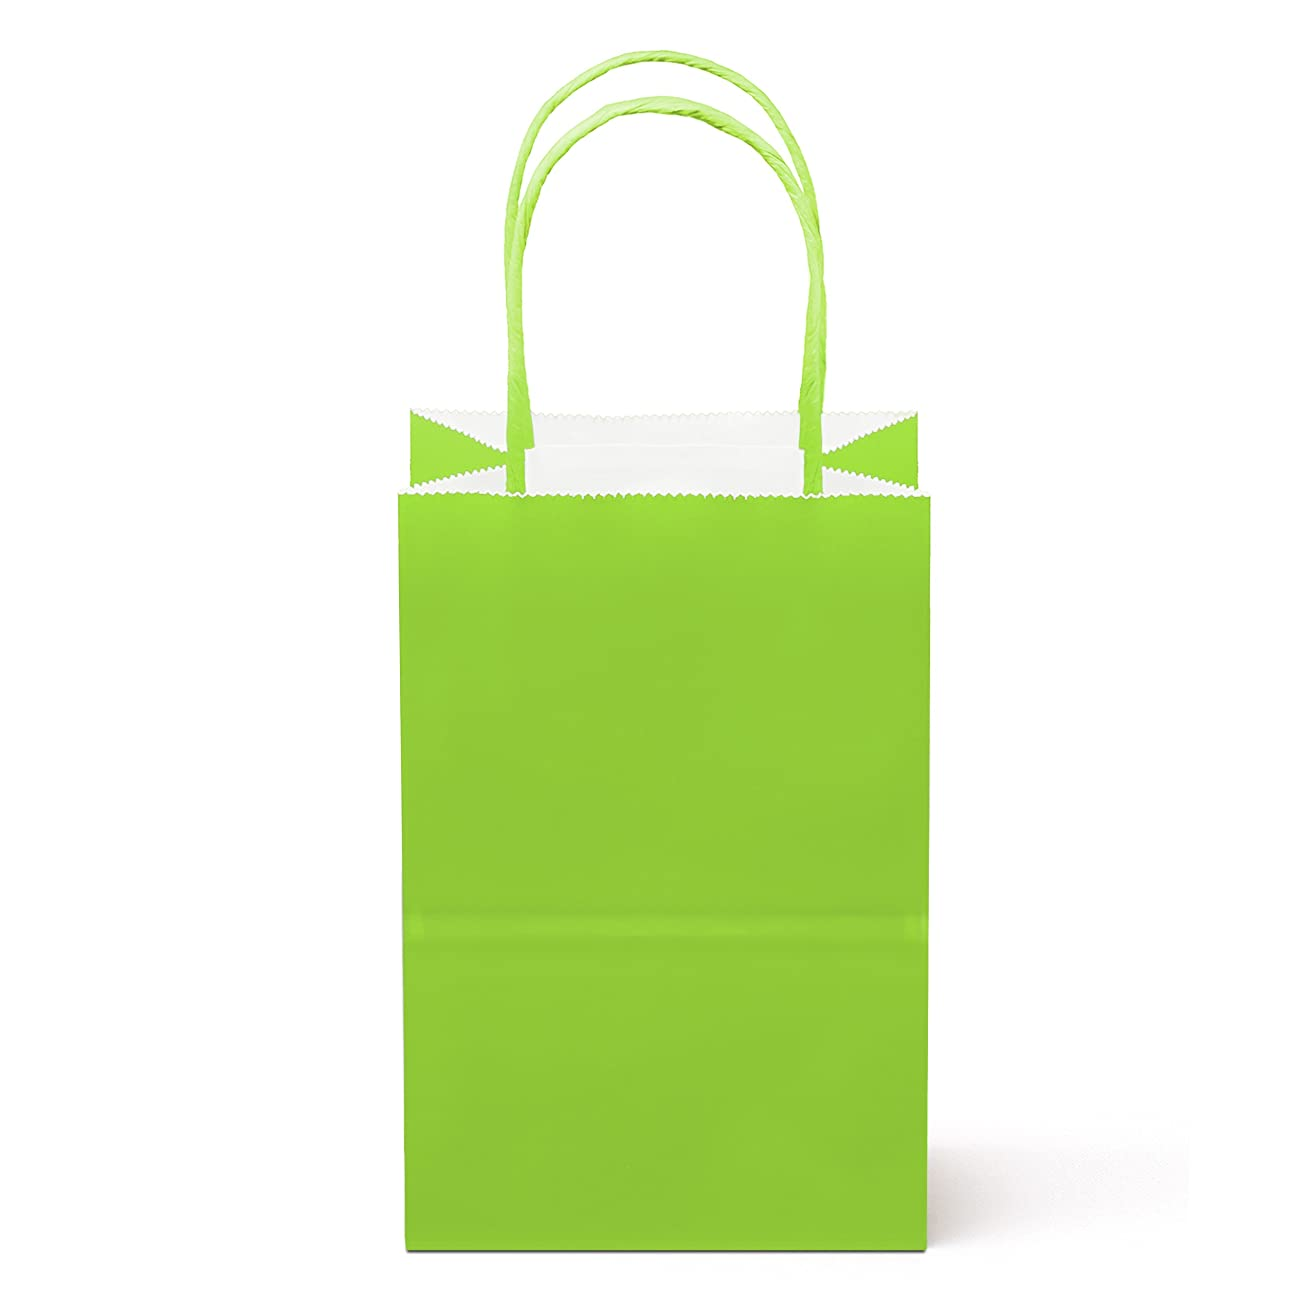 "8 Counts Food Safe Premium Paper and Ink Small 8.5"" X 5.25"", Vivid Colored Kraft Bag with Colored Sturdy Handle, Perfect for Goodie Favor DIY Bag, Environmentally Safe (Small, Lime Green)"